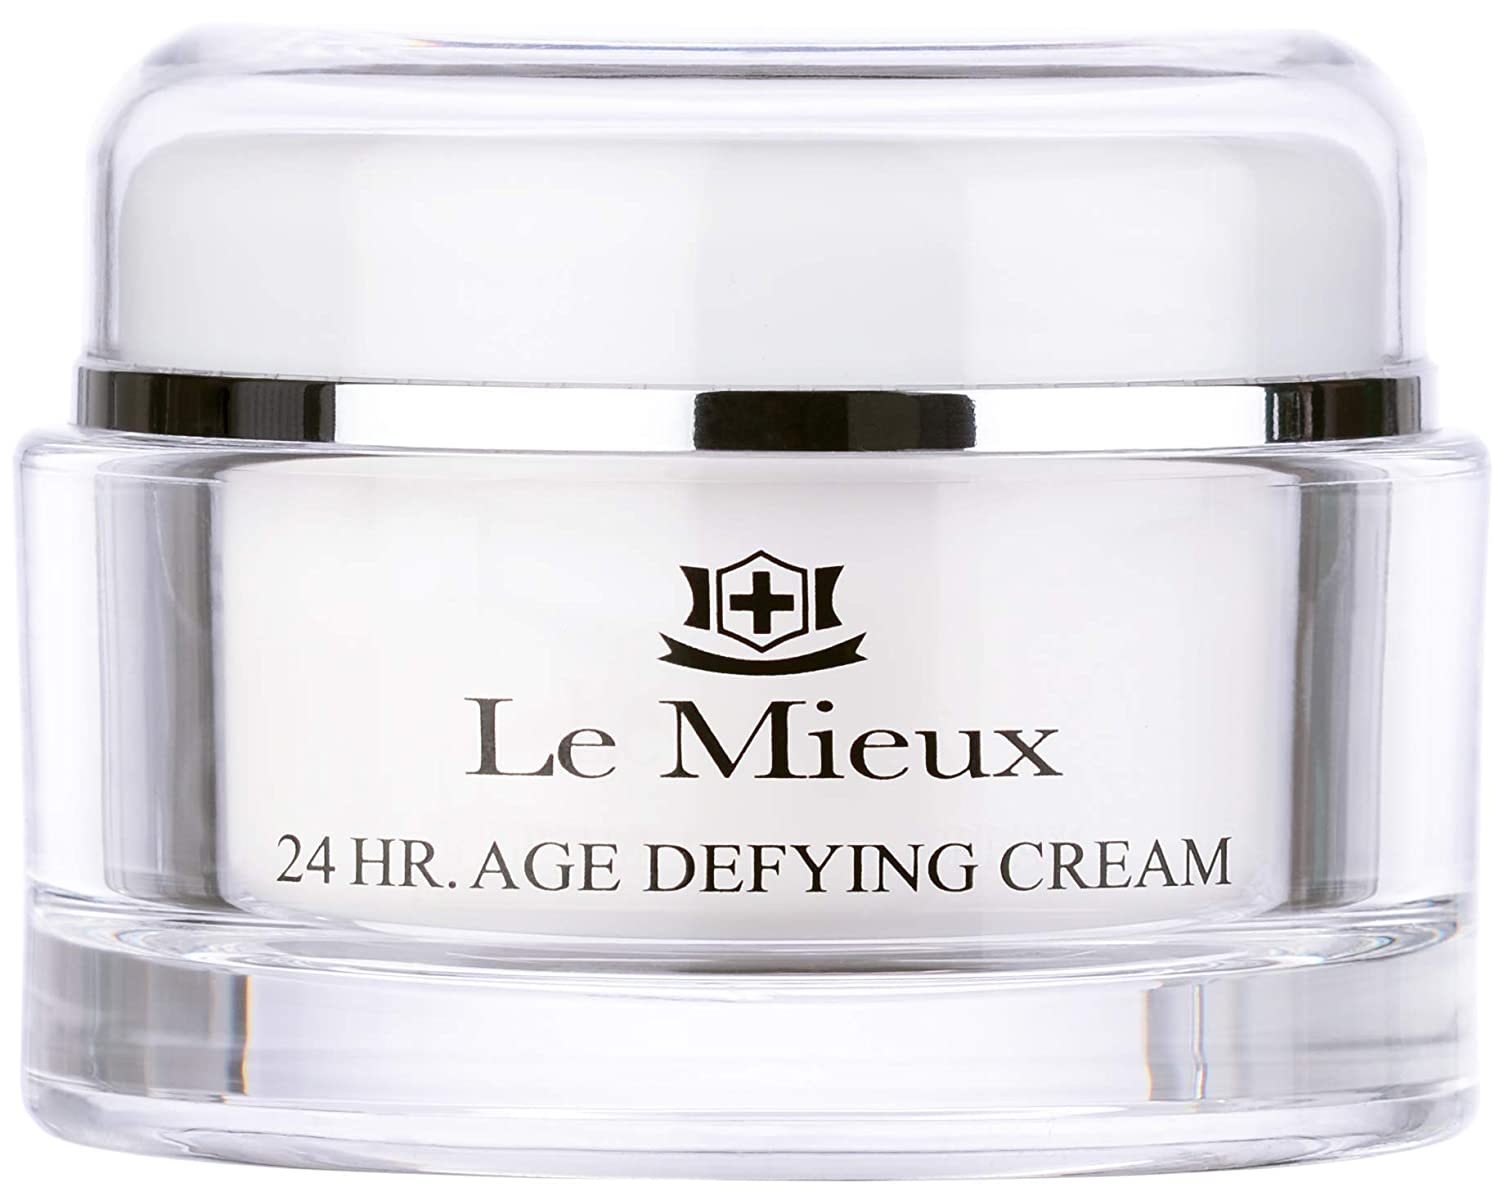 Le Mieux 24 Hr. Age Defying Cream - Rich Moisturizer for Long Lasting Hydration with Hyaluronic Acid Base & Peptides, No Parabens or Sulfates (1.75 oz / 52 ml)